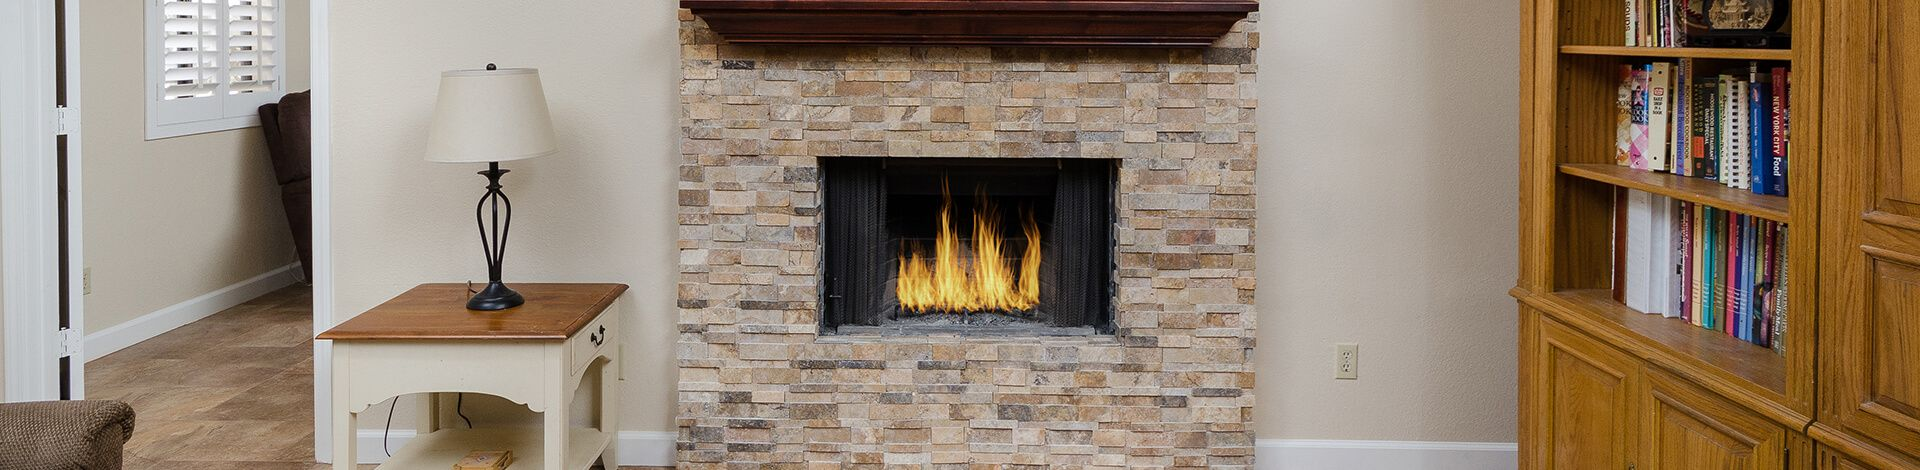 05 Family Room Fireplace